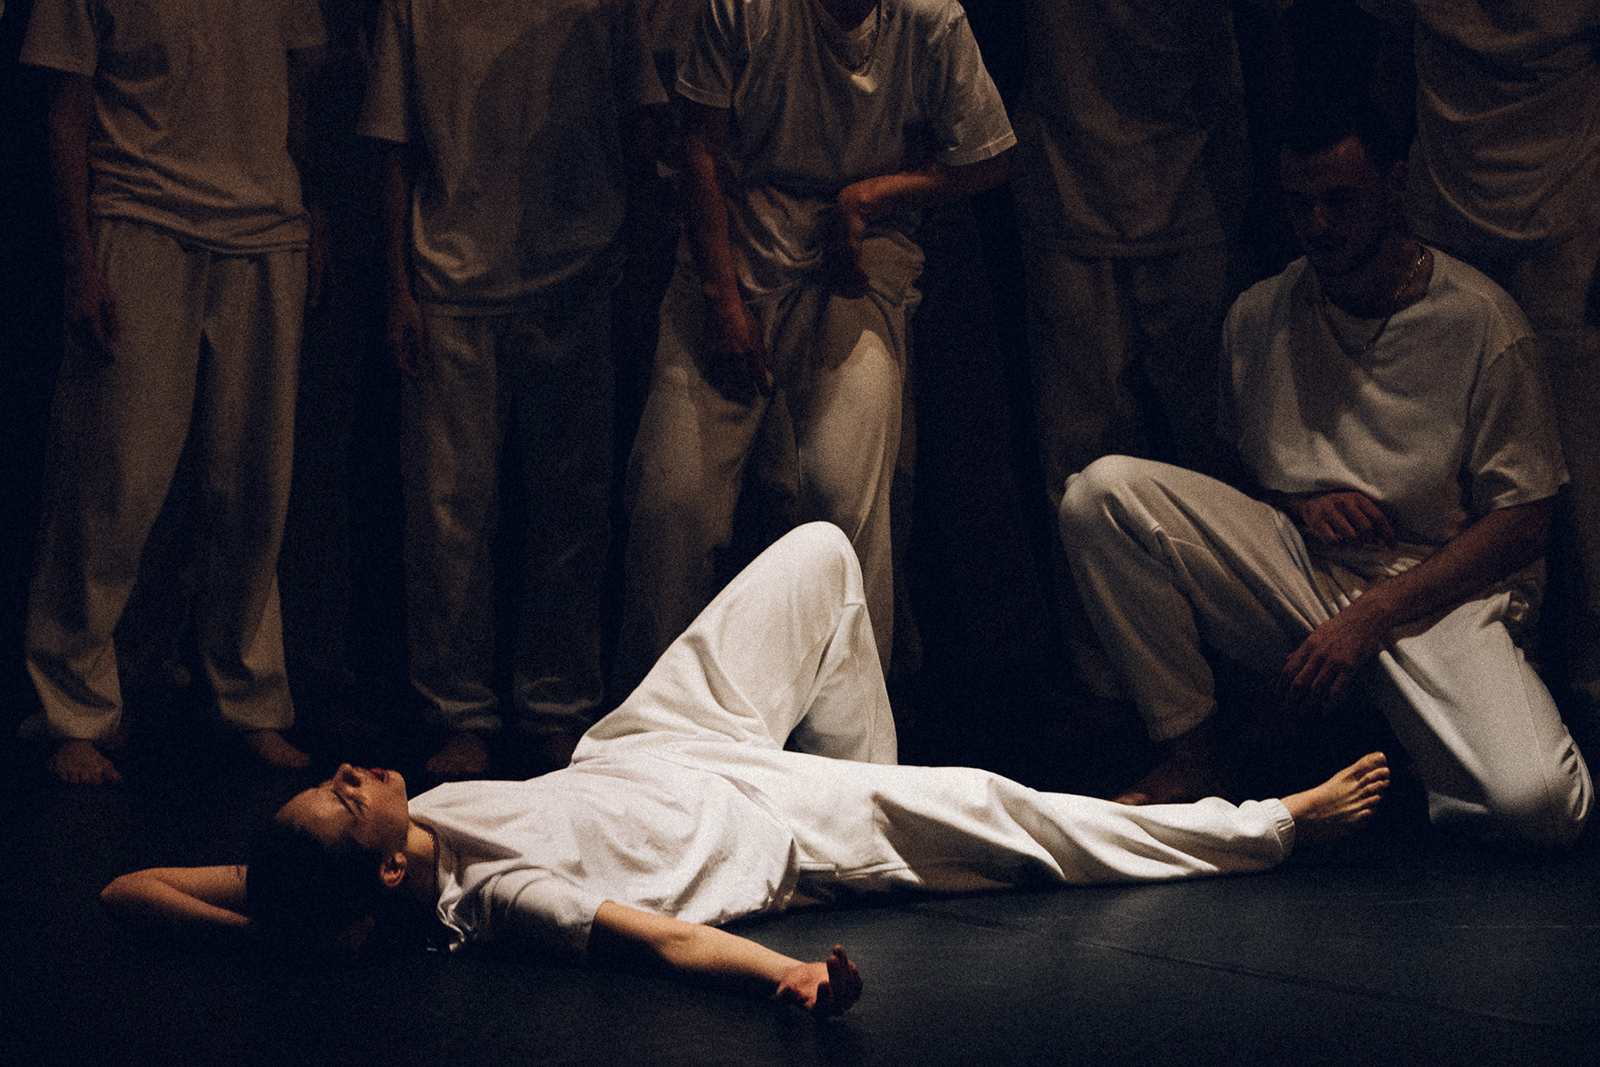 Lazarus by Oona Doherty / Ballet national de Marseille © Théo Giacometti